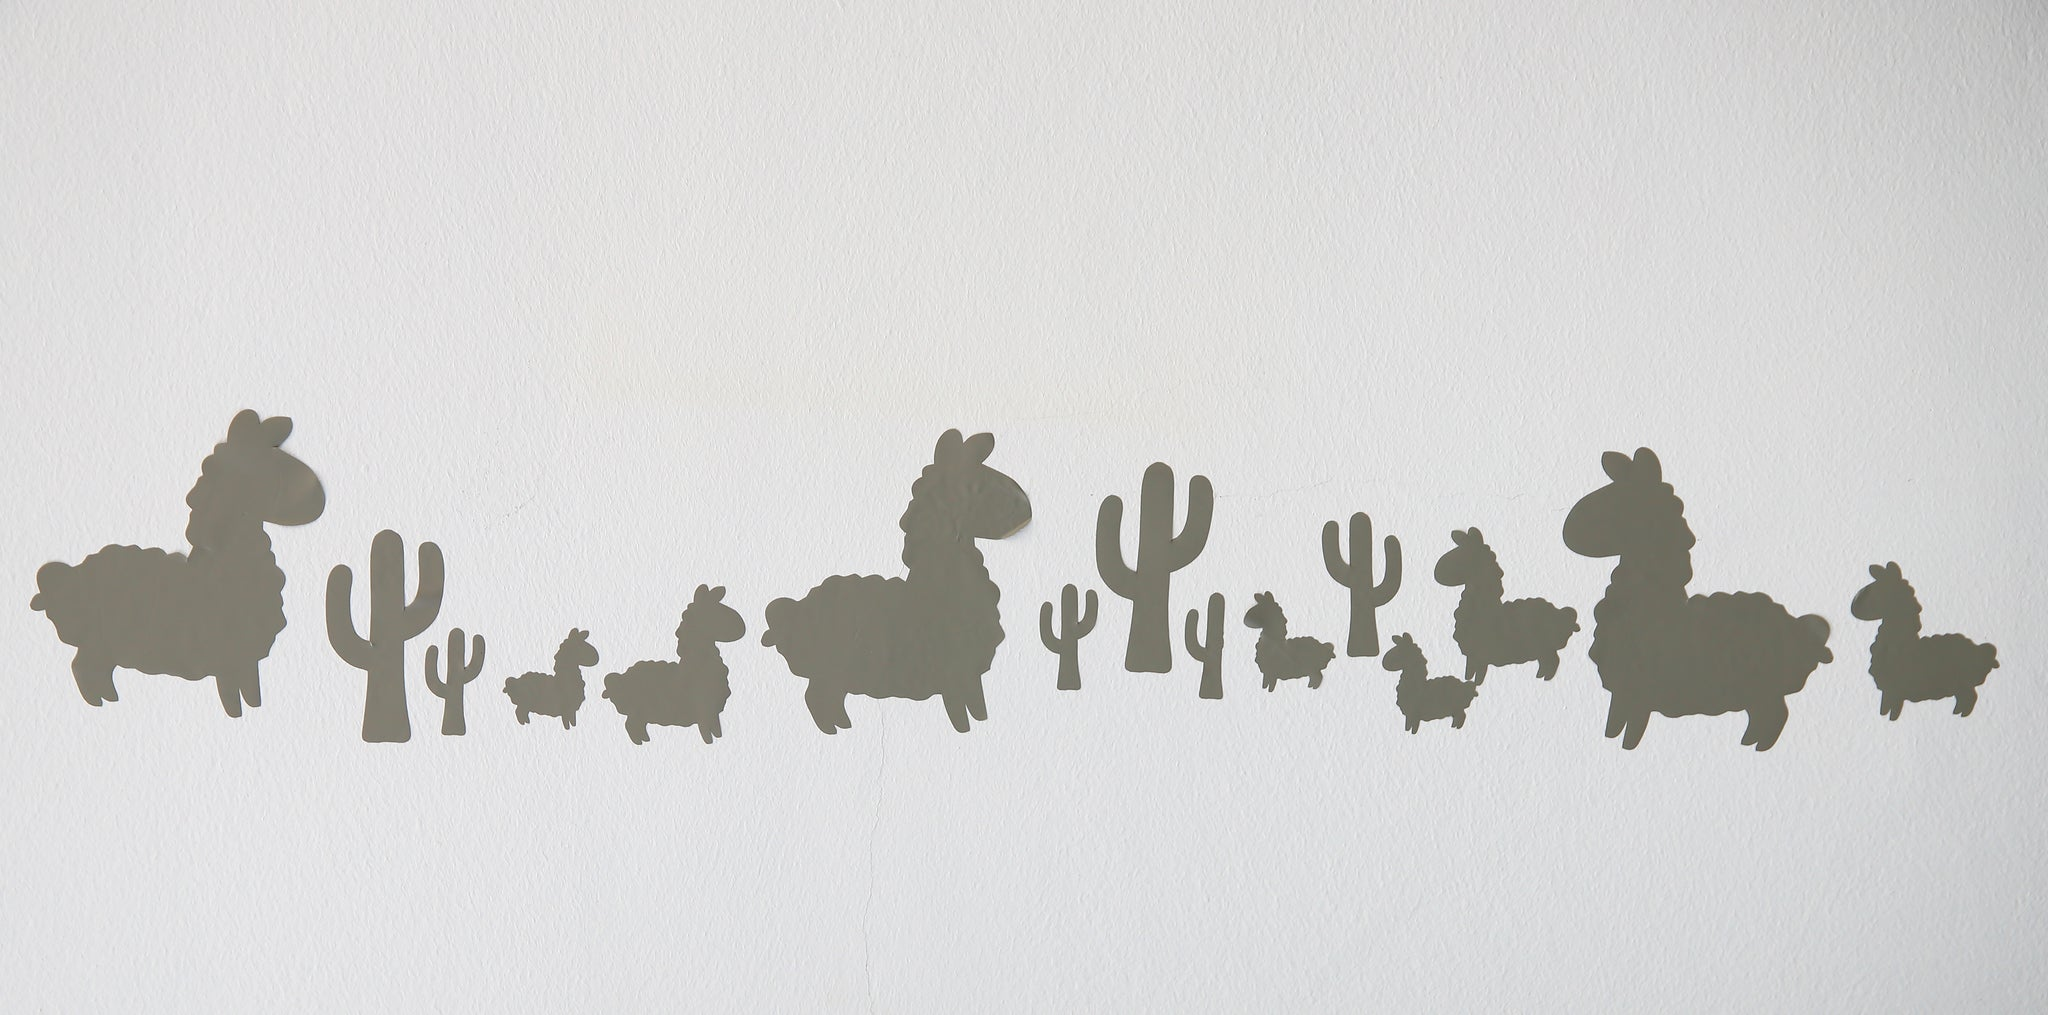 Vinyl Wall Stickers - Llama & Cactus - Little Lumps